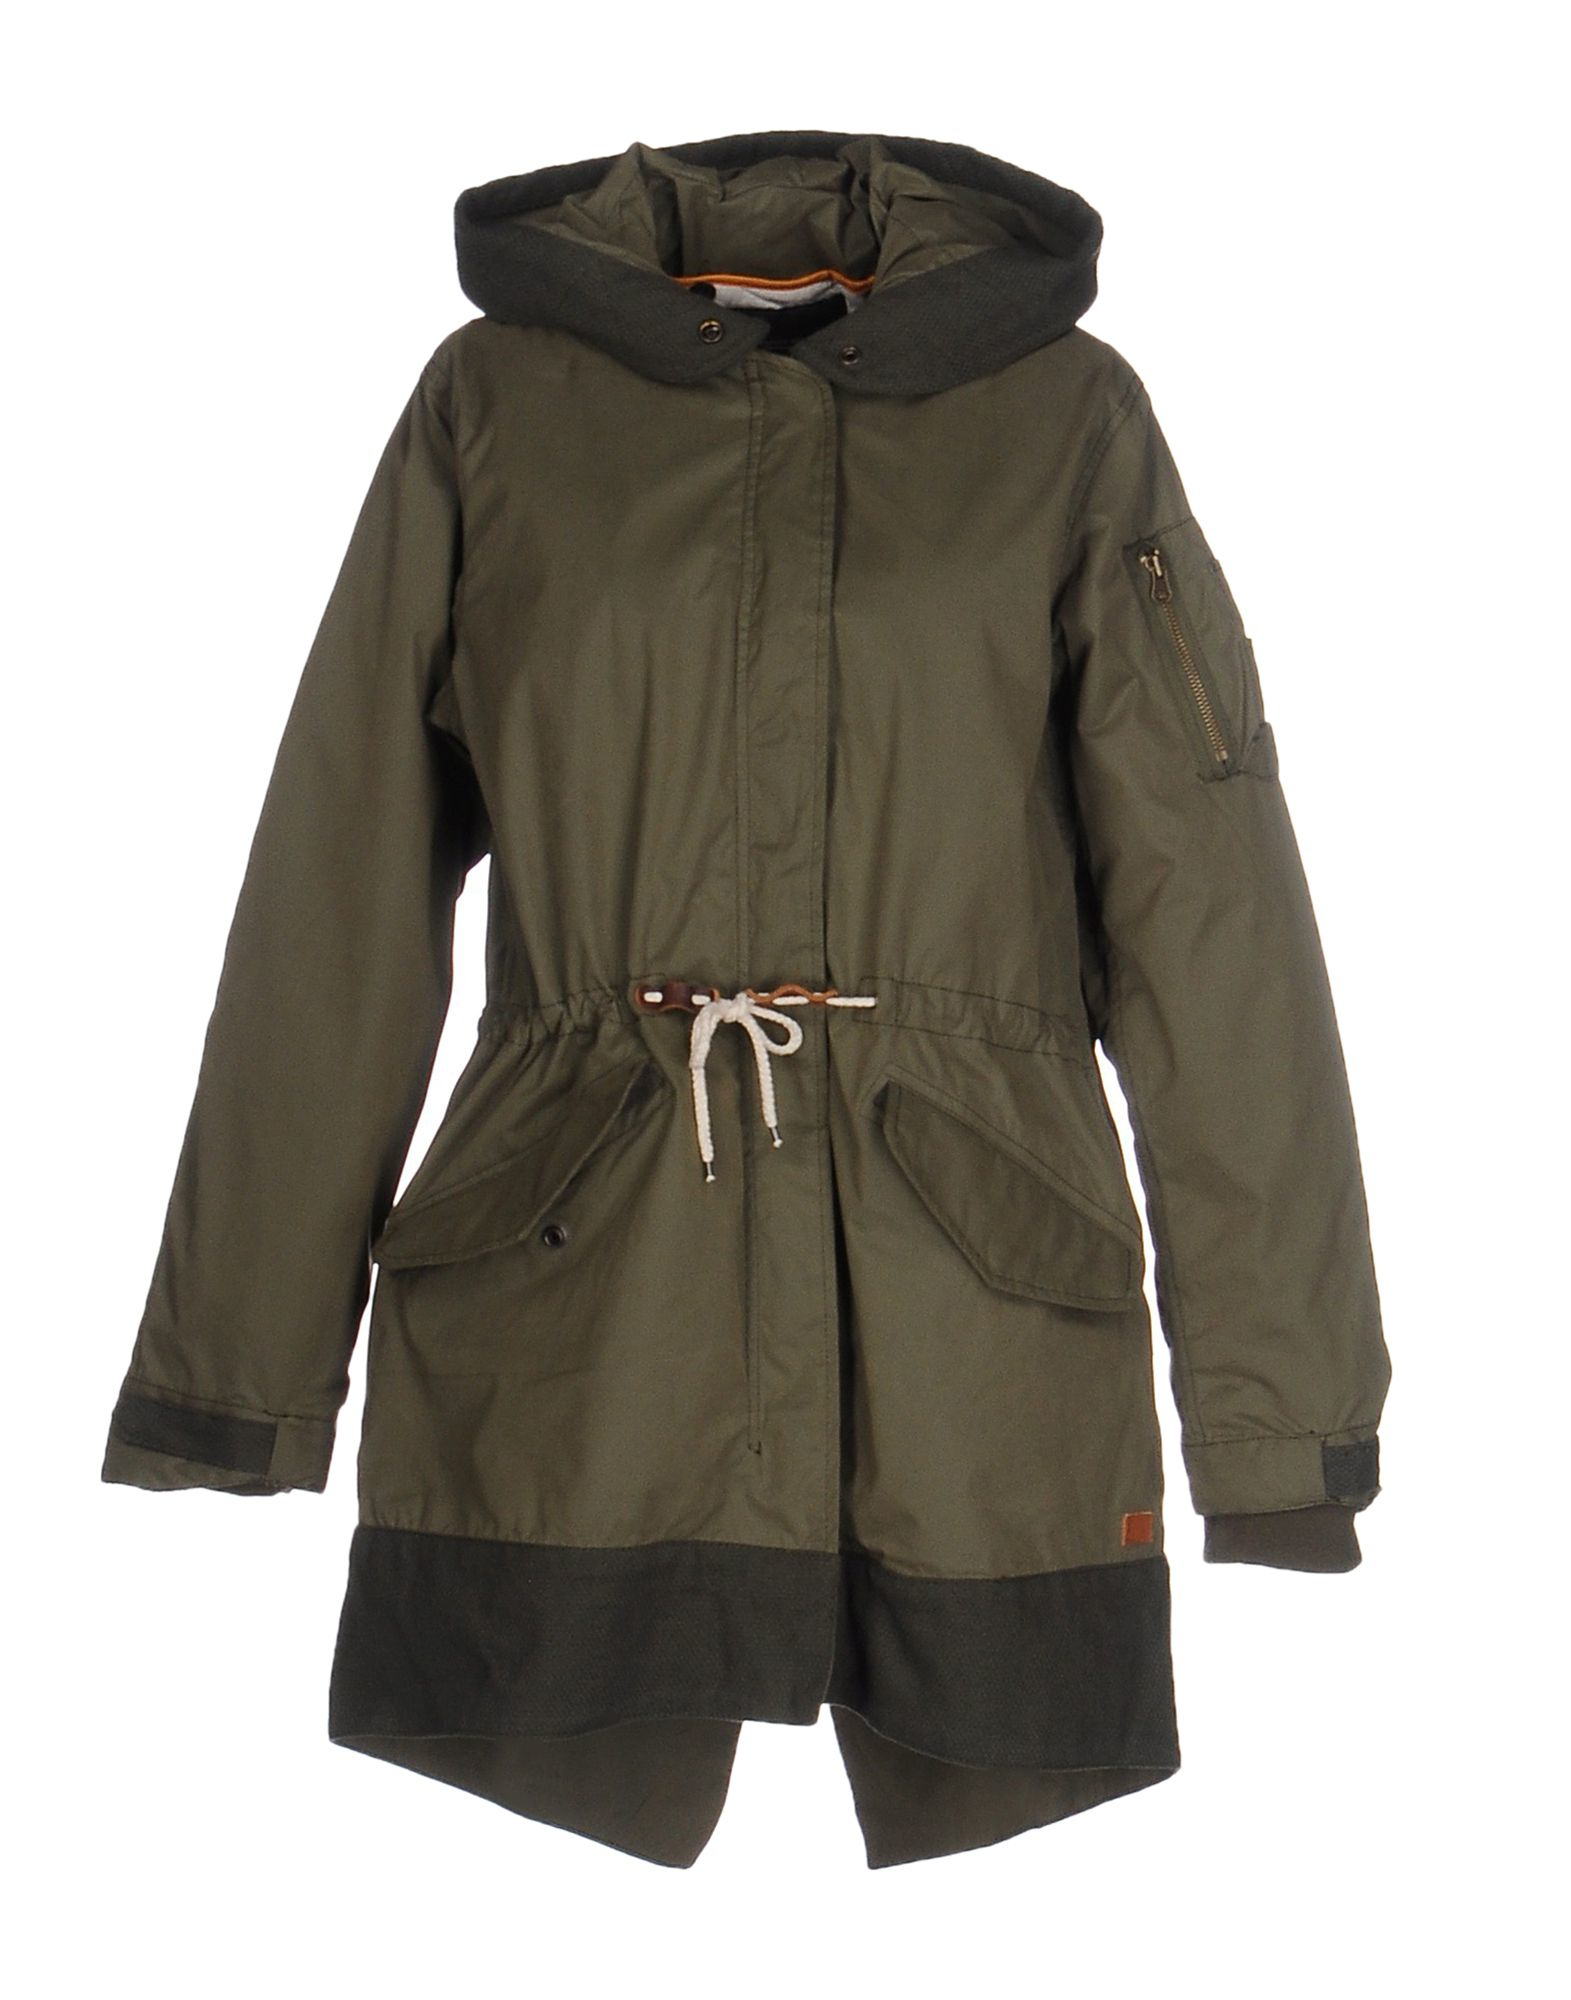 maison scotch jacket in natural military green lyst. Black Bedroom Furniture Sets. Home Design Ideas